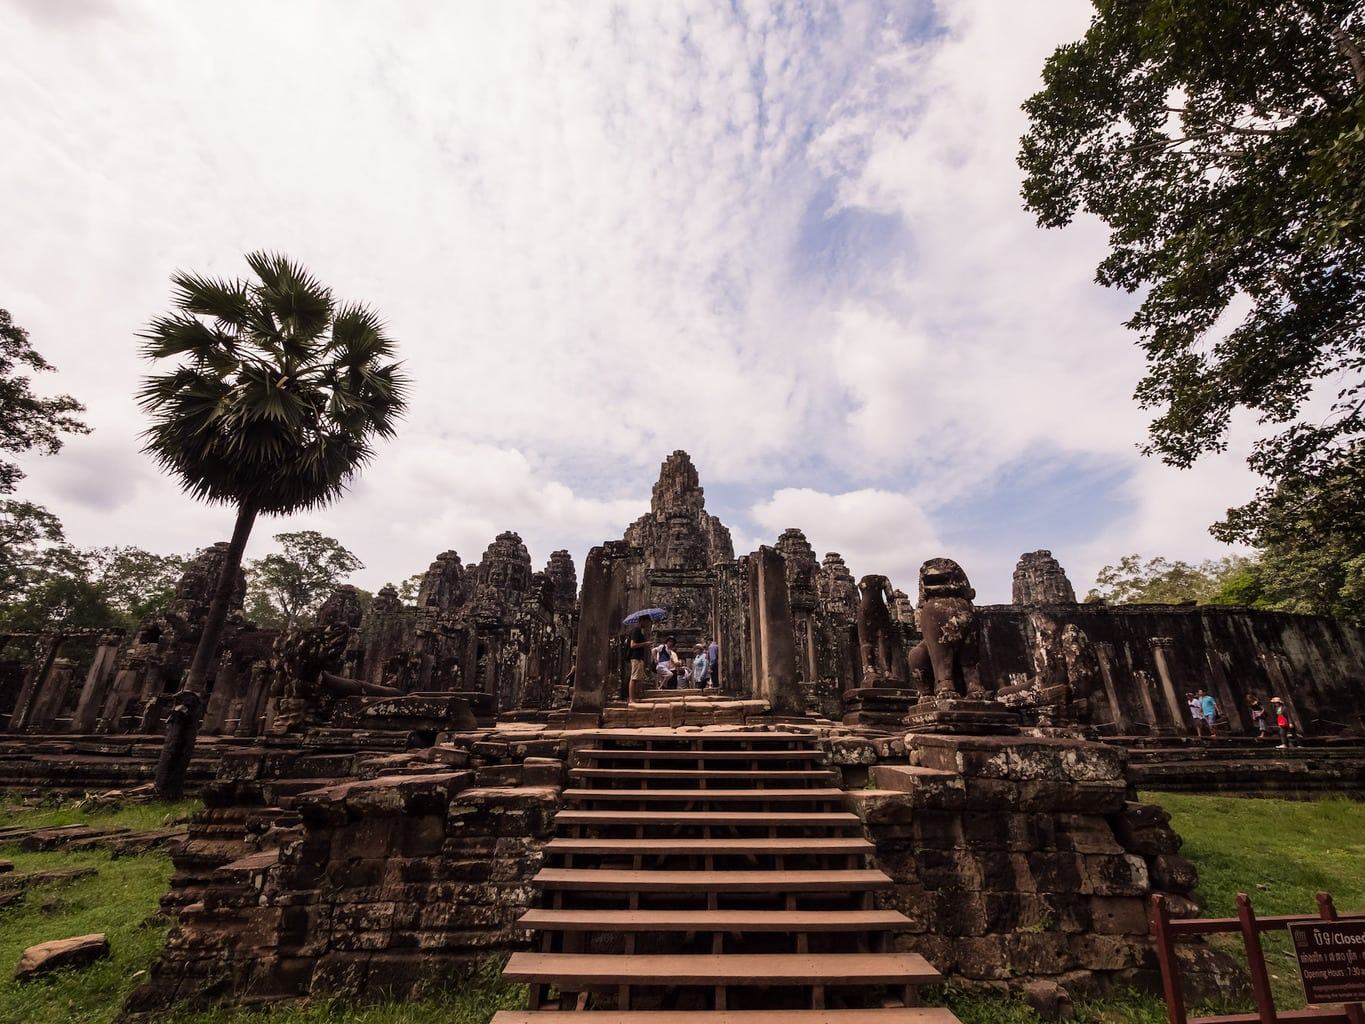 Entering the Bayon